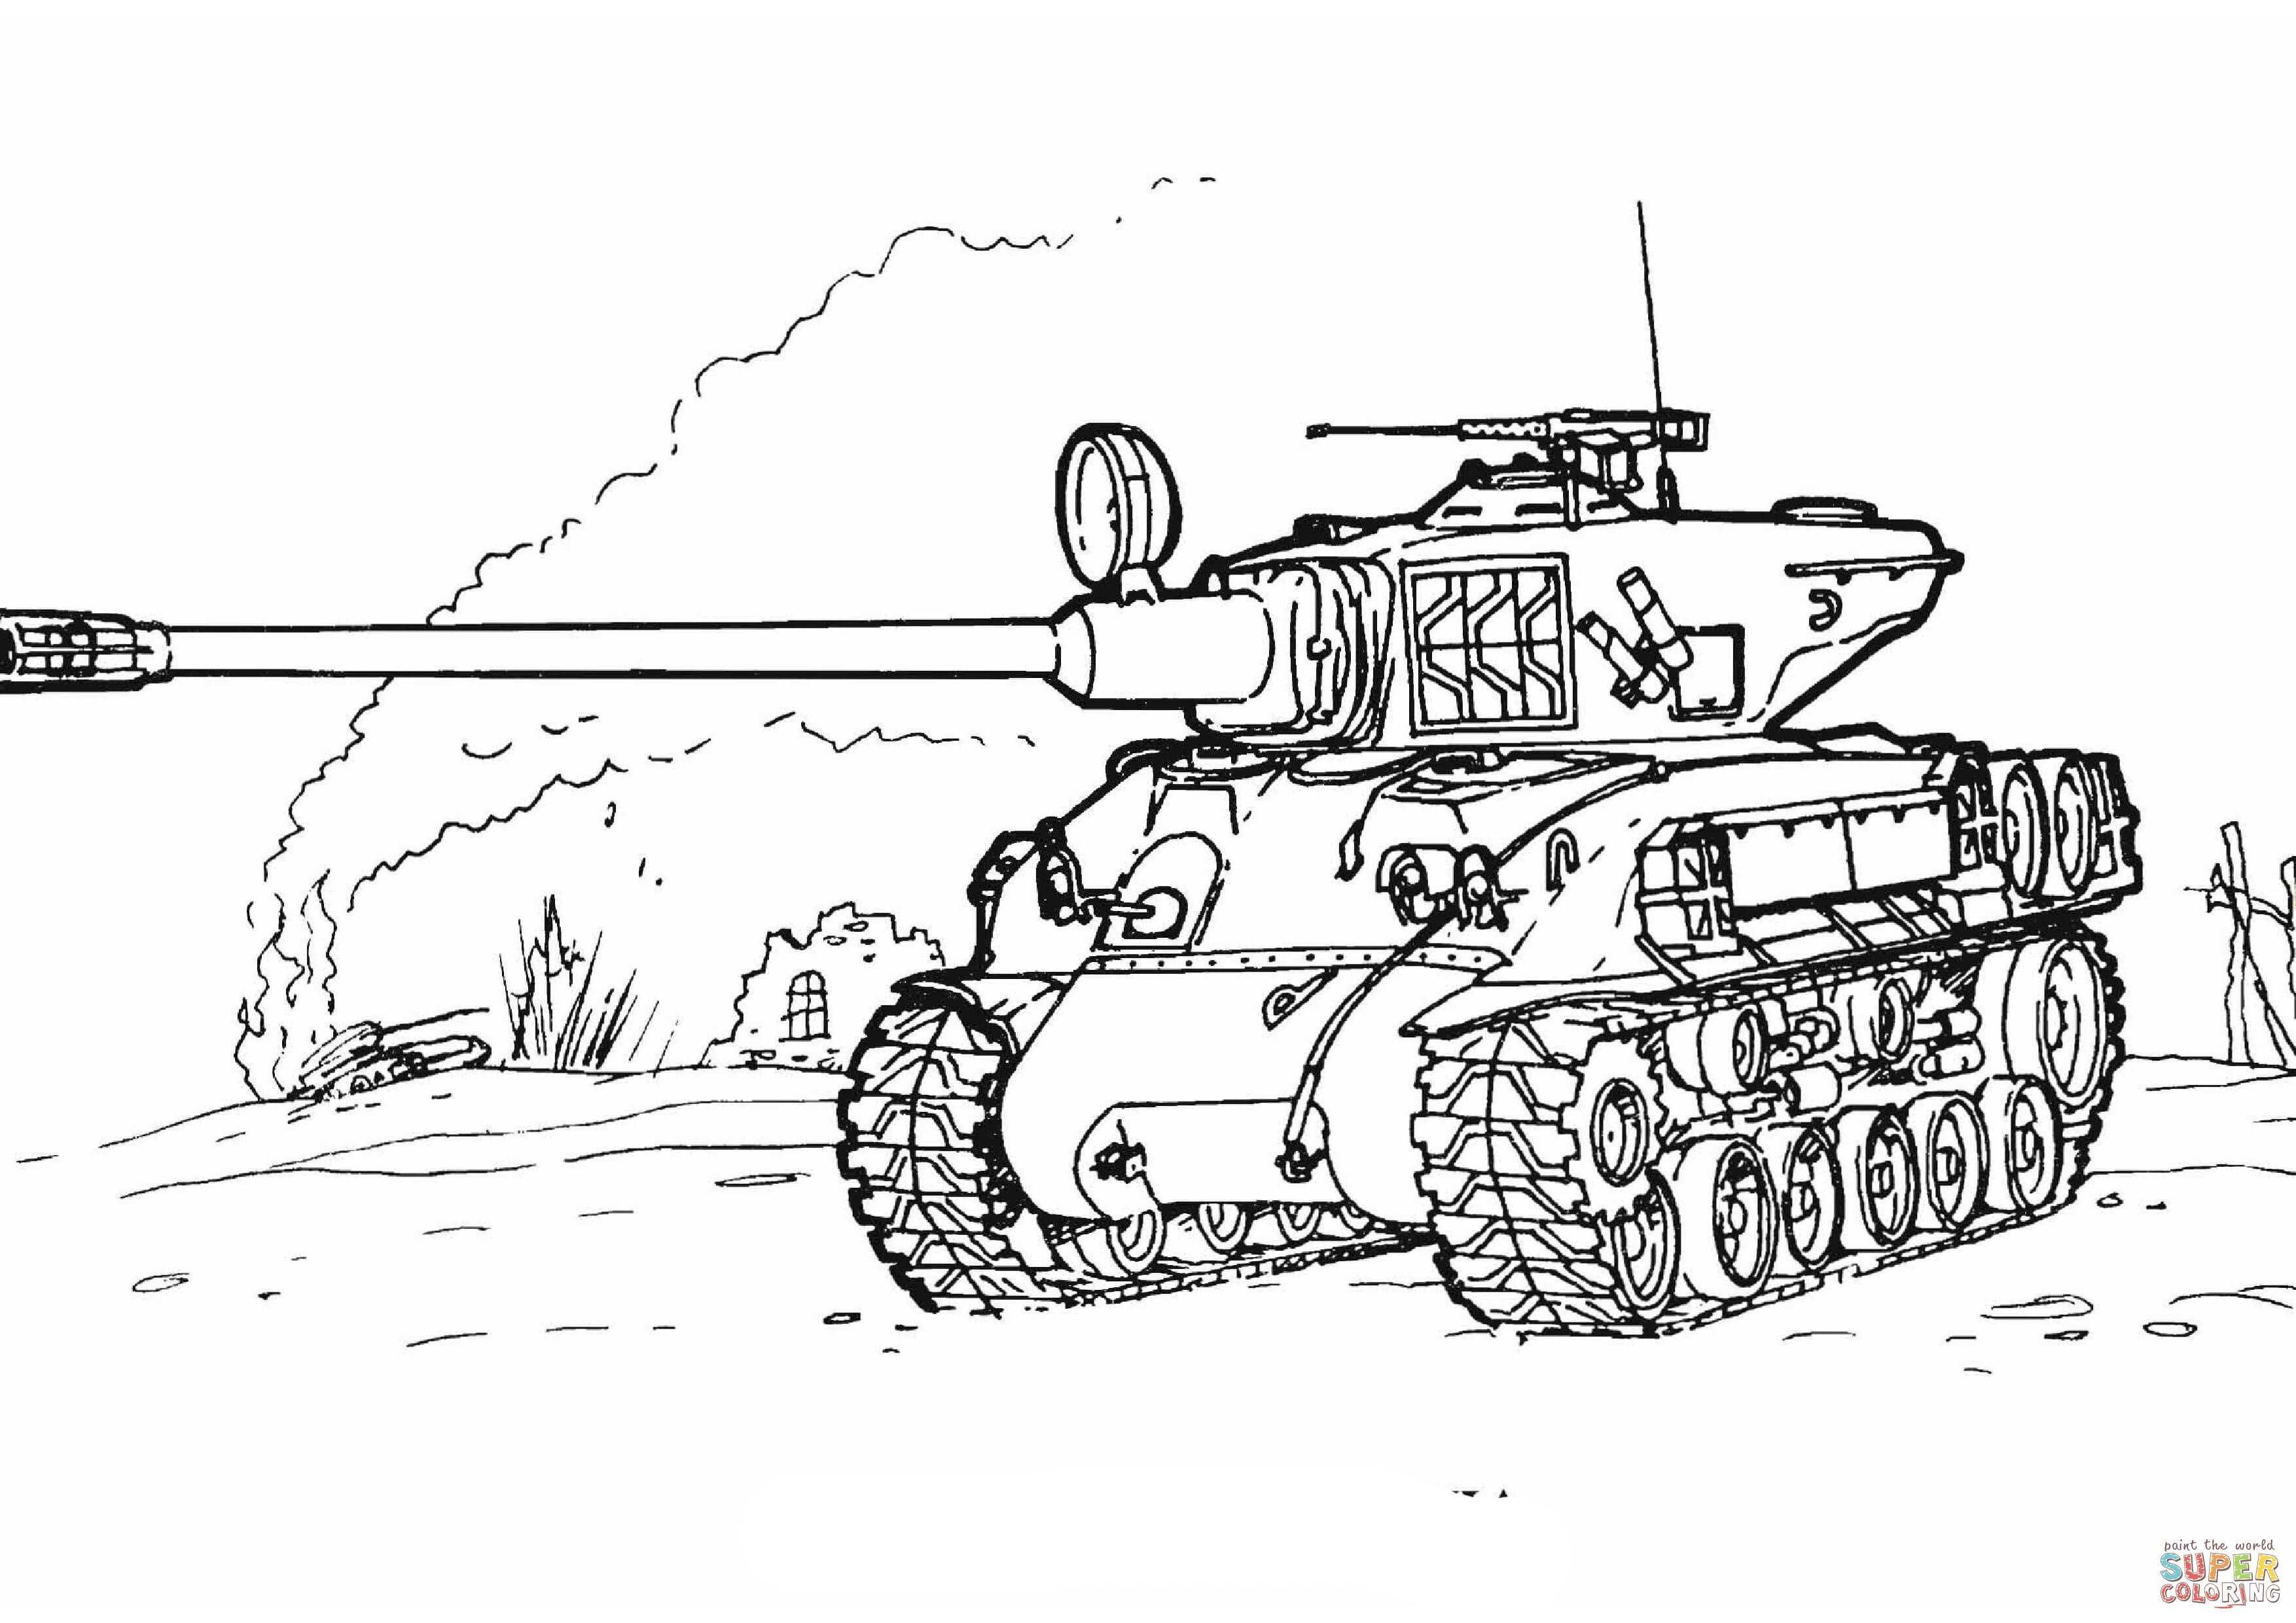 Sherman M 51 Tank Coloring Page From Tanks Category Select From 27260 Printable Crafts Of Cartoons Nature Animals B Tank Drawing Coloring Pages Tank Tattoo